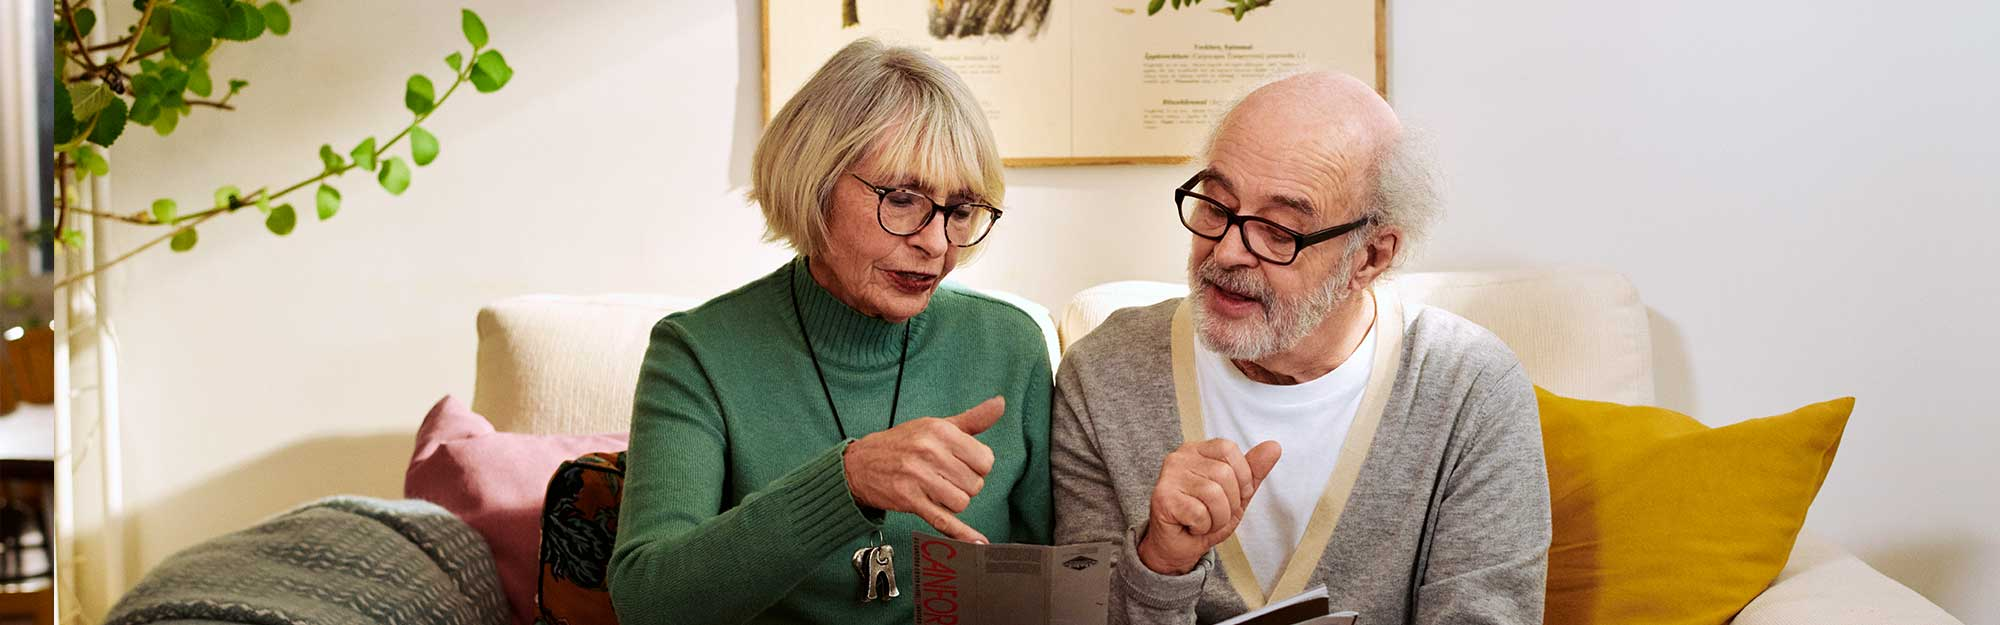 Senior couple looking in a book together